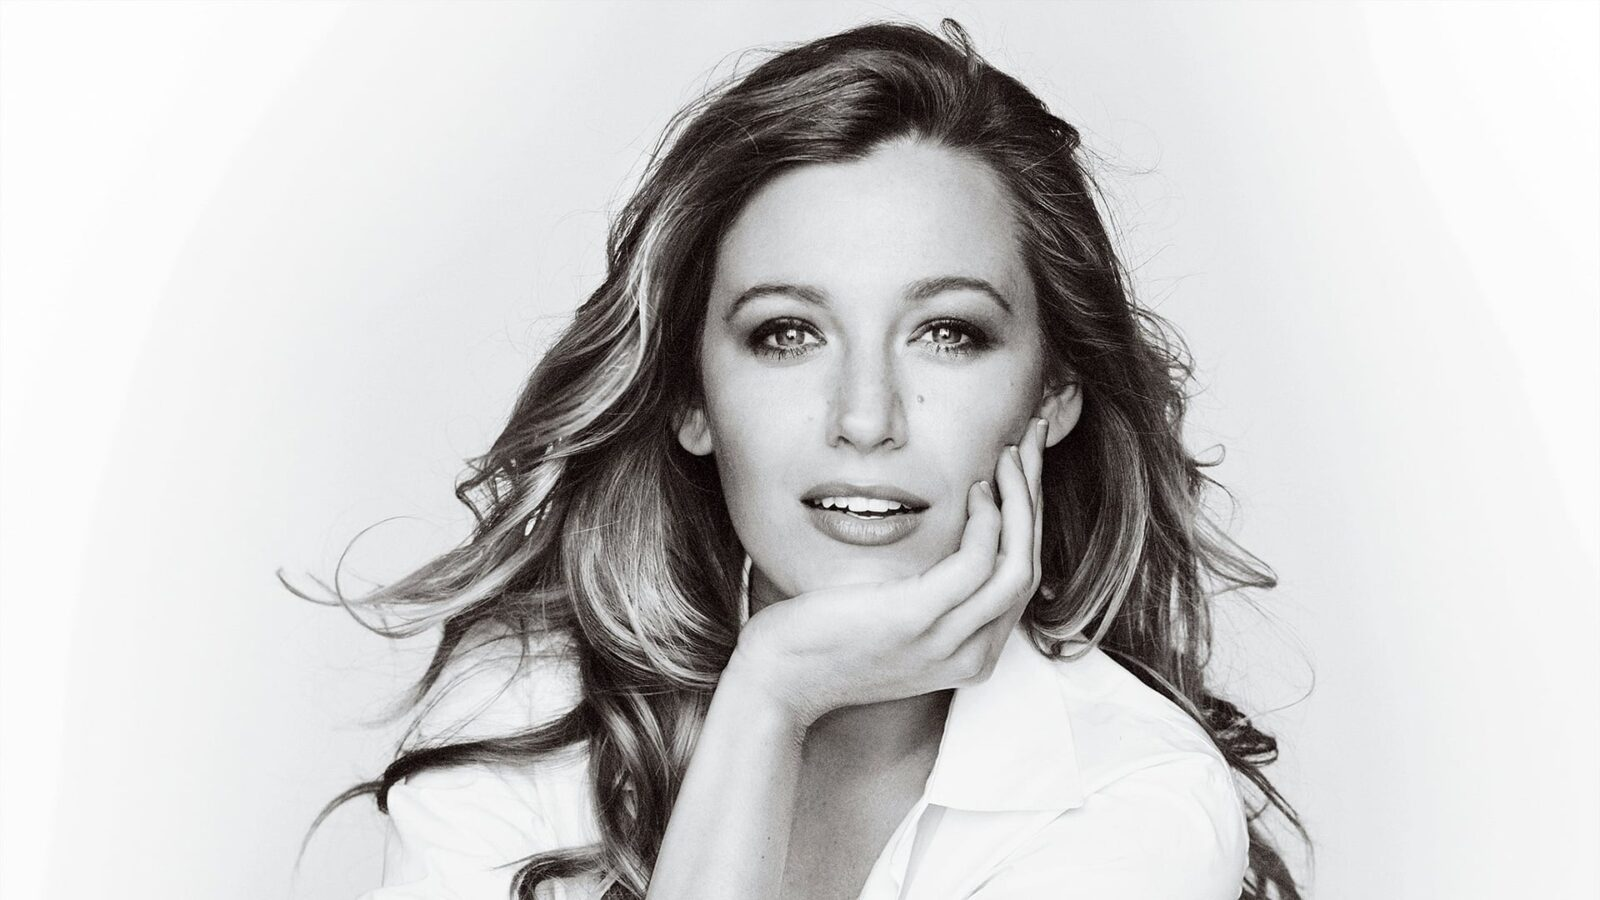 Blake Lively wallpapers High Quality Download Blake Lively